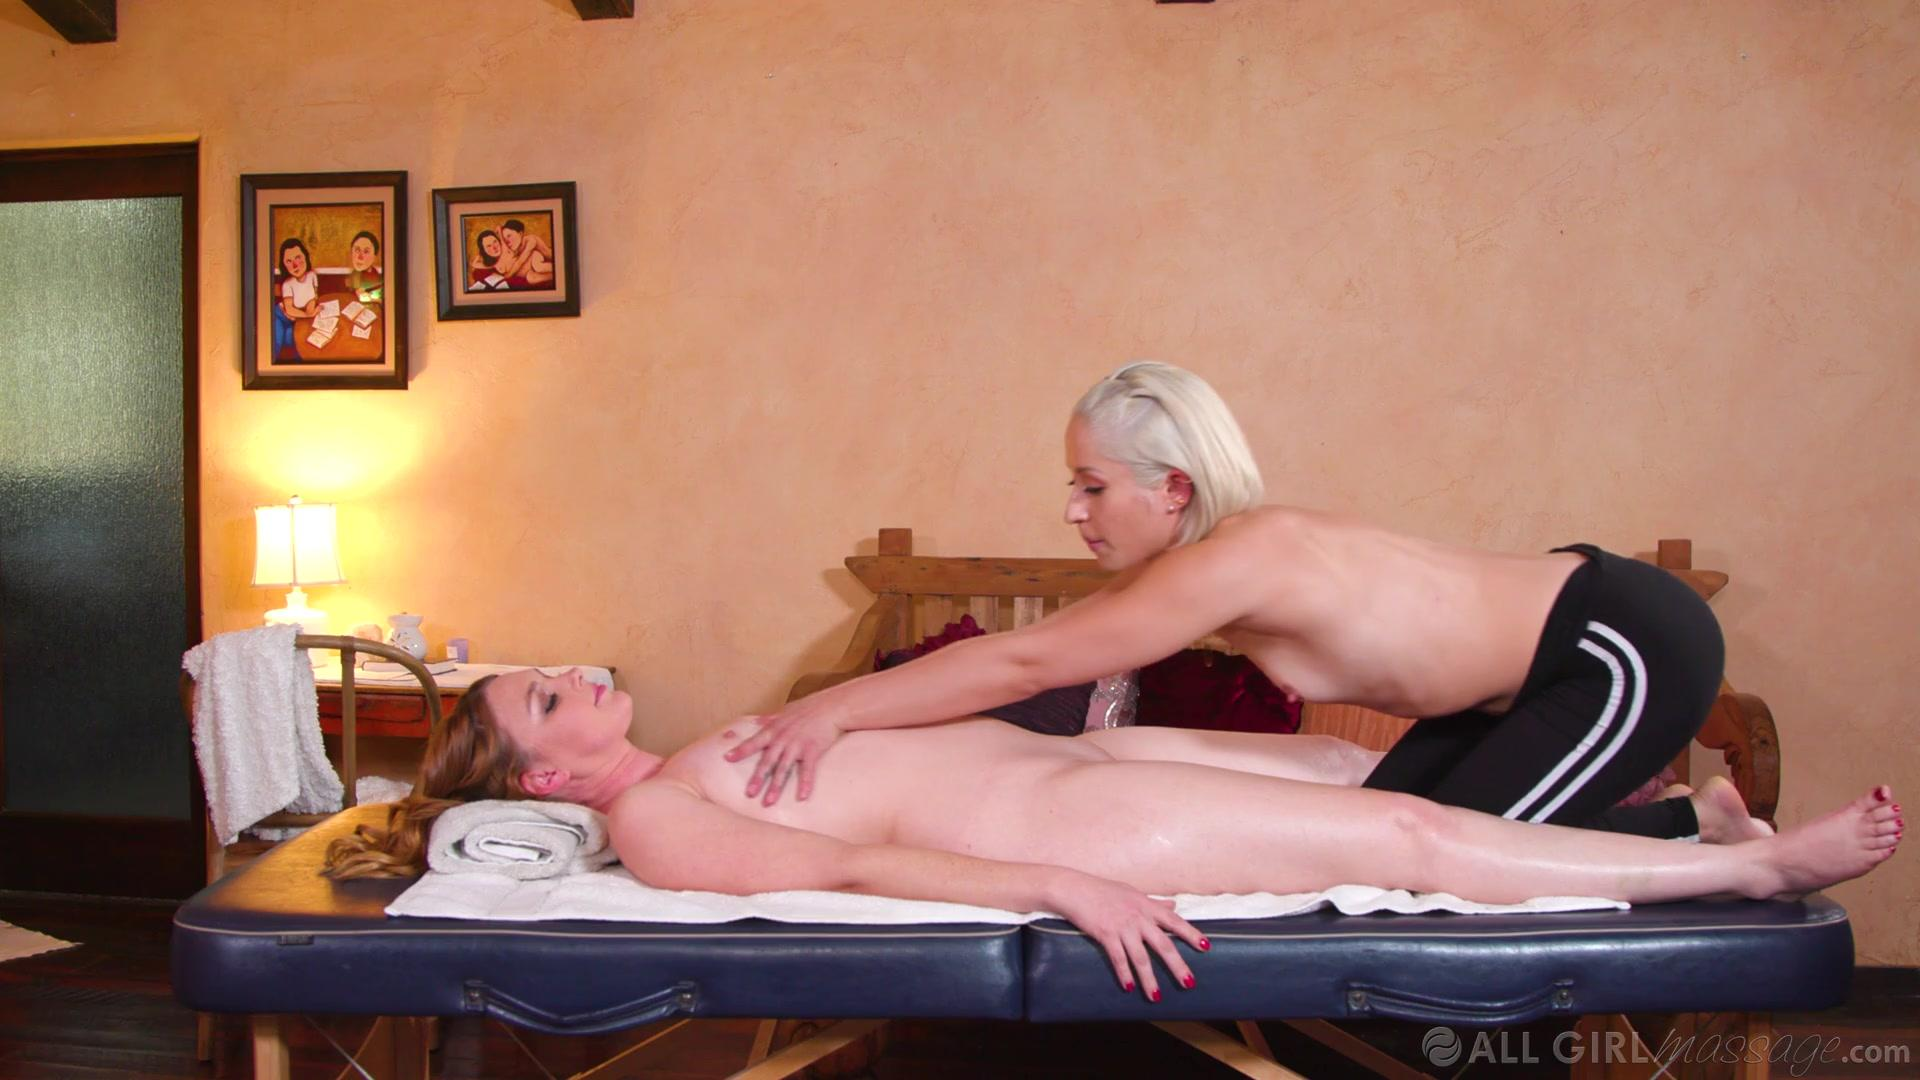 All Girl Massage – Marie Mccray And Goldie Glock Tricking My New Step-Mom